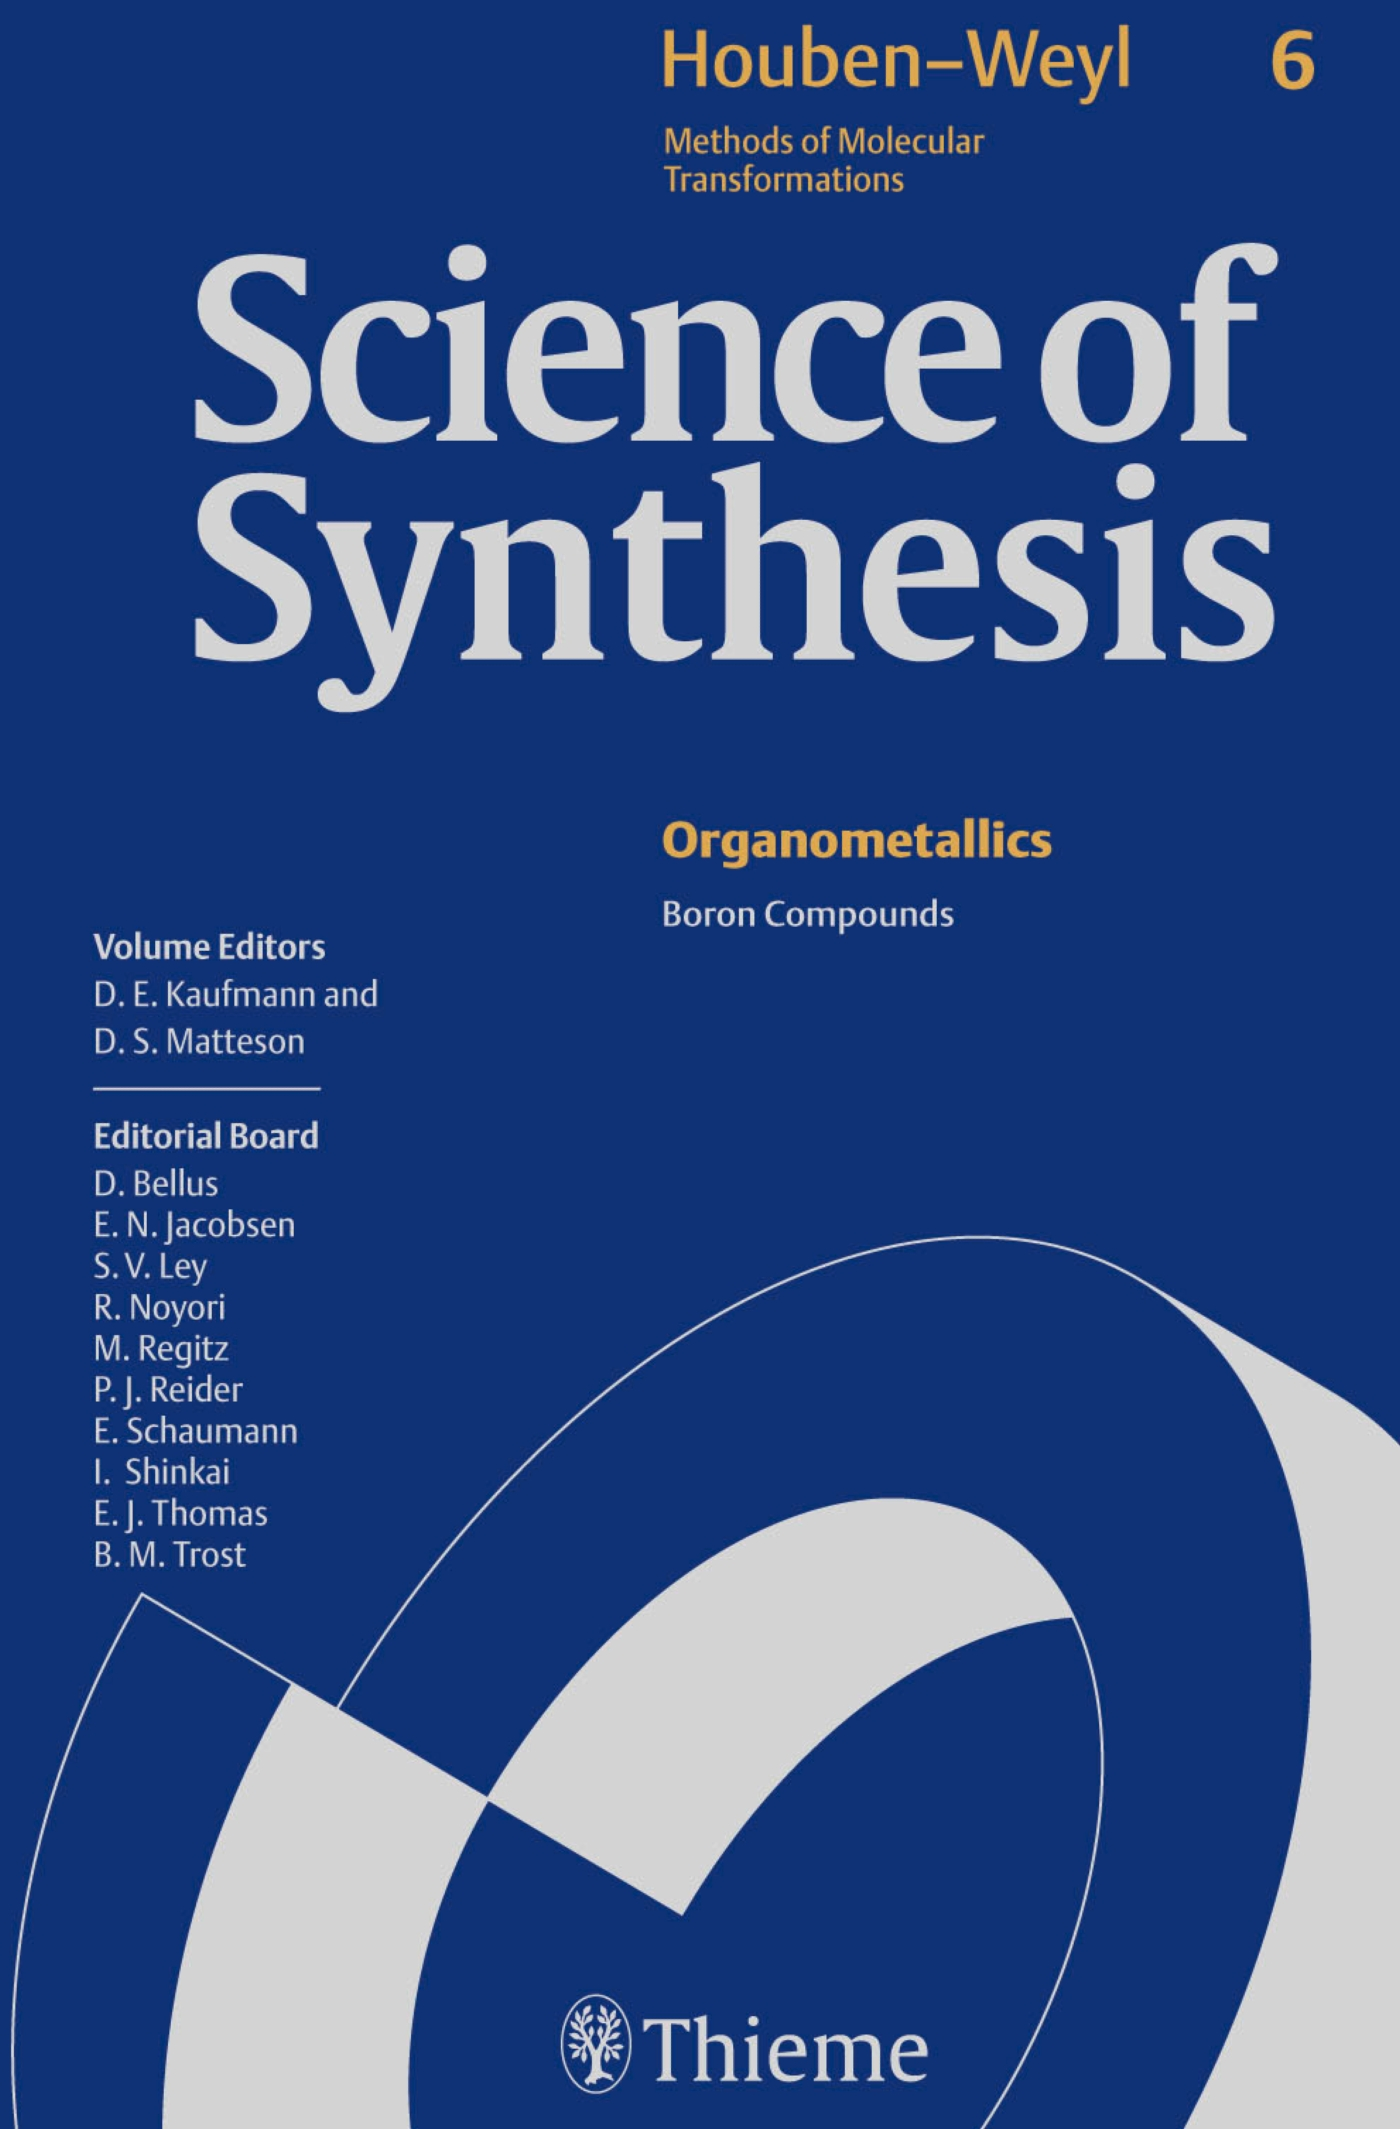 Science of Synthesis: Houben-Weyl Methods of Molecular Transformations  Vol. 6